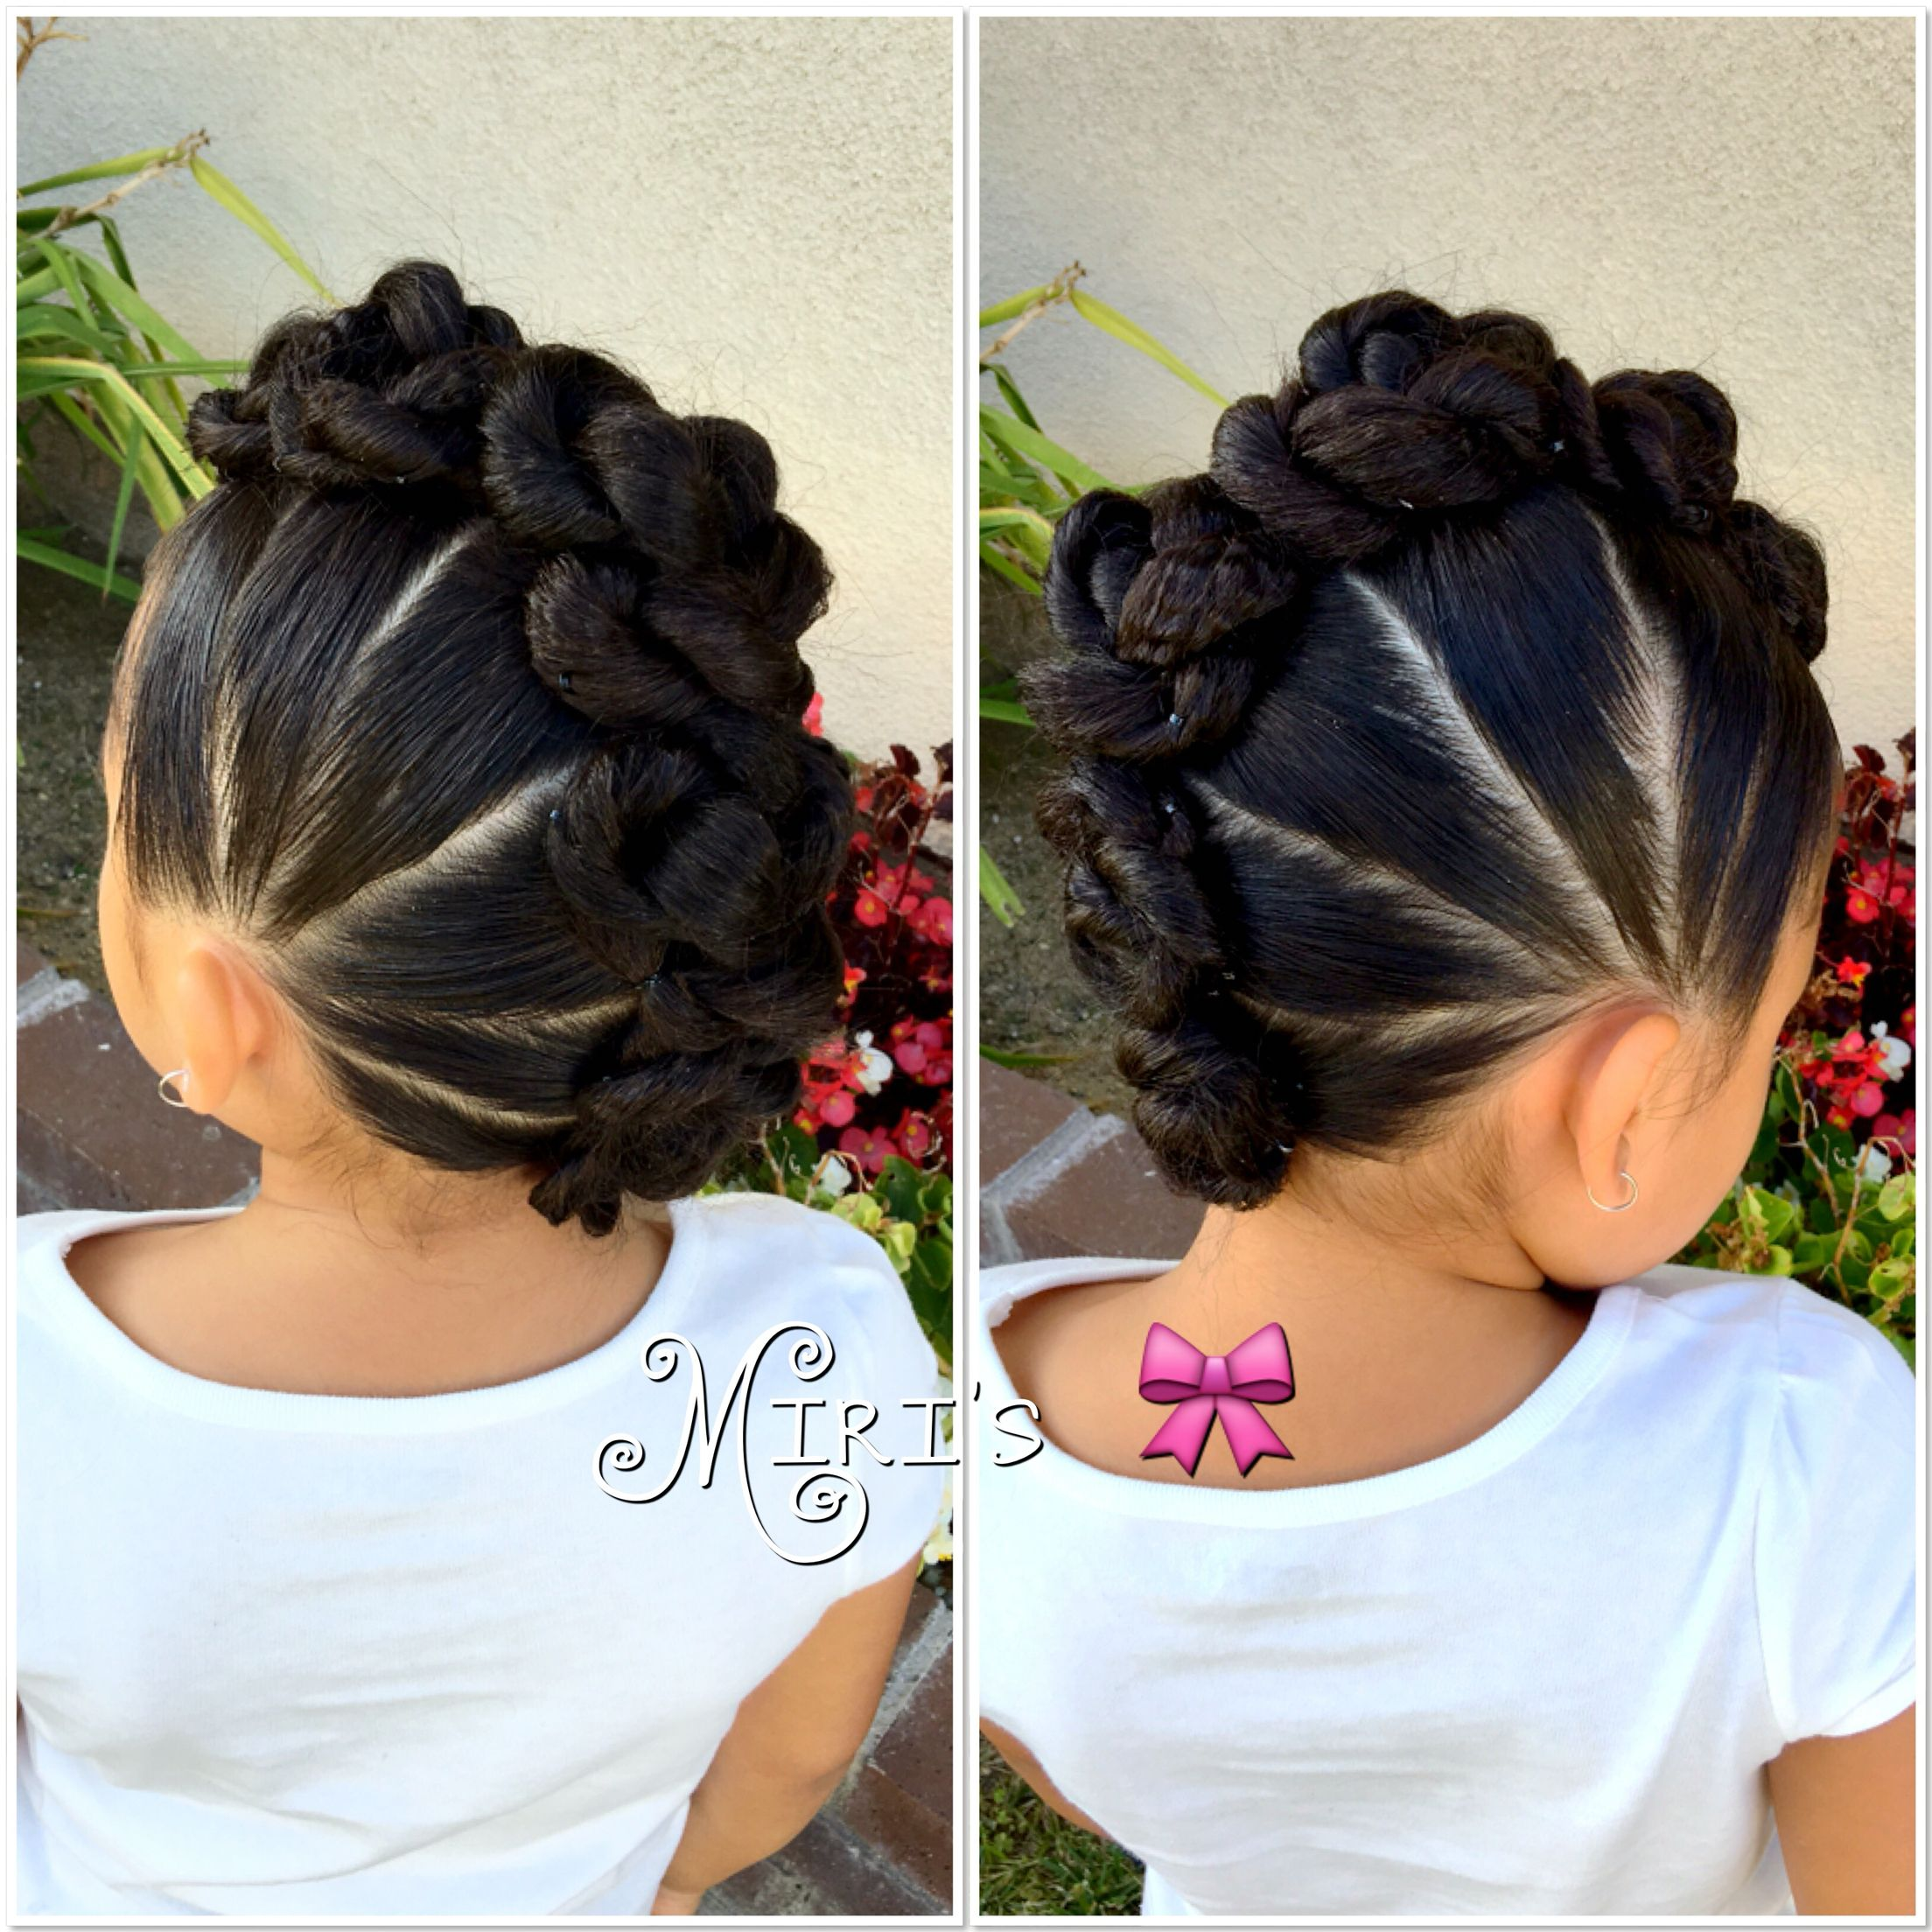 Twisties Hairstyles Extraordinary Mohawk With Twists Hair Style For Little Girls  Hair Tips & Hair